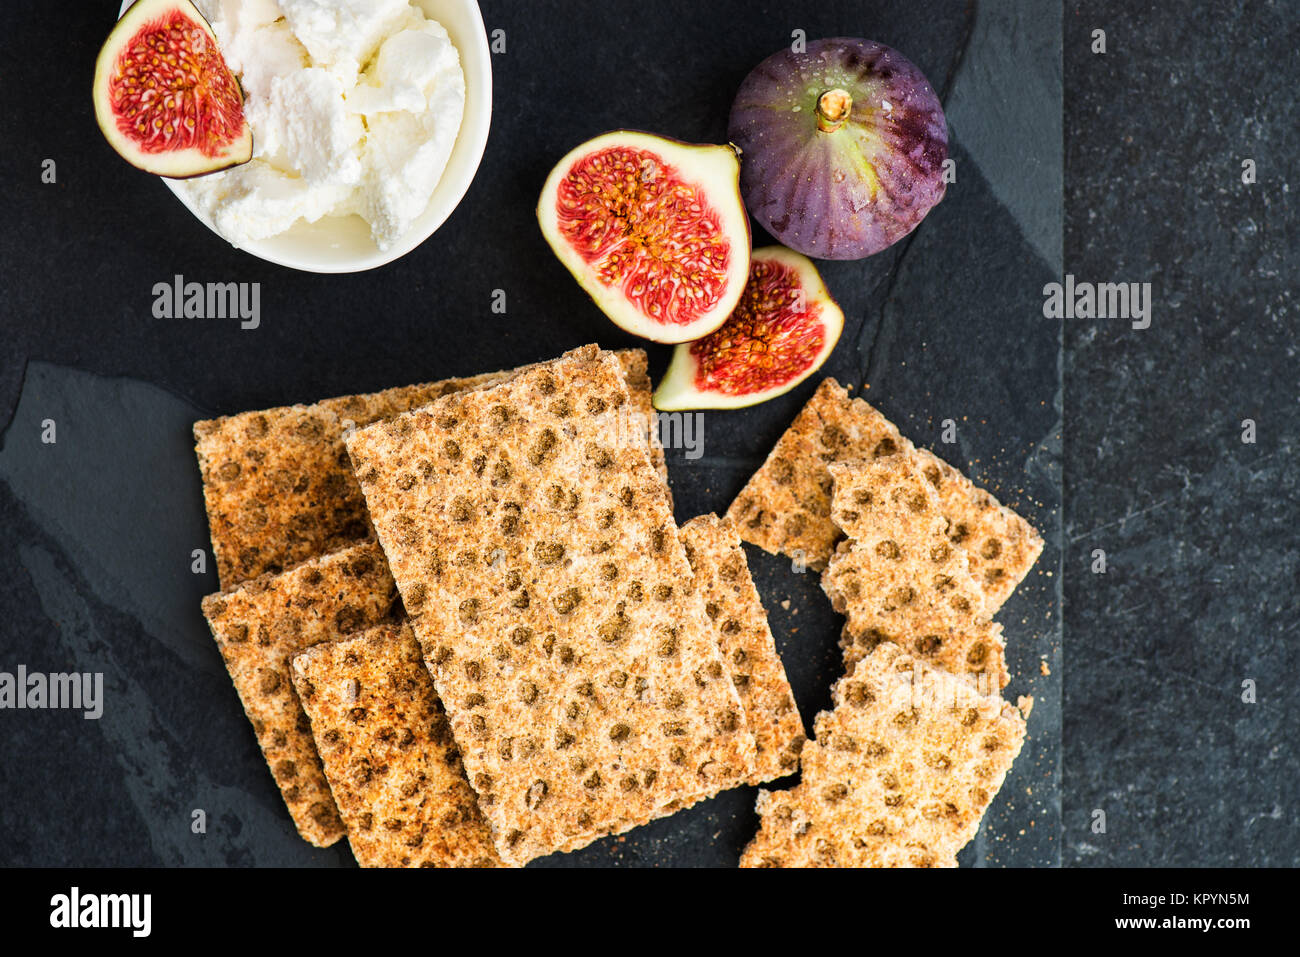 Wholegrain rye crispbread crackers, figs and ricotta cheese are ready for the healthy snack, dark background - Stock Image